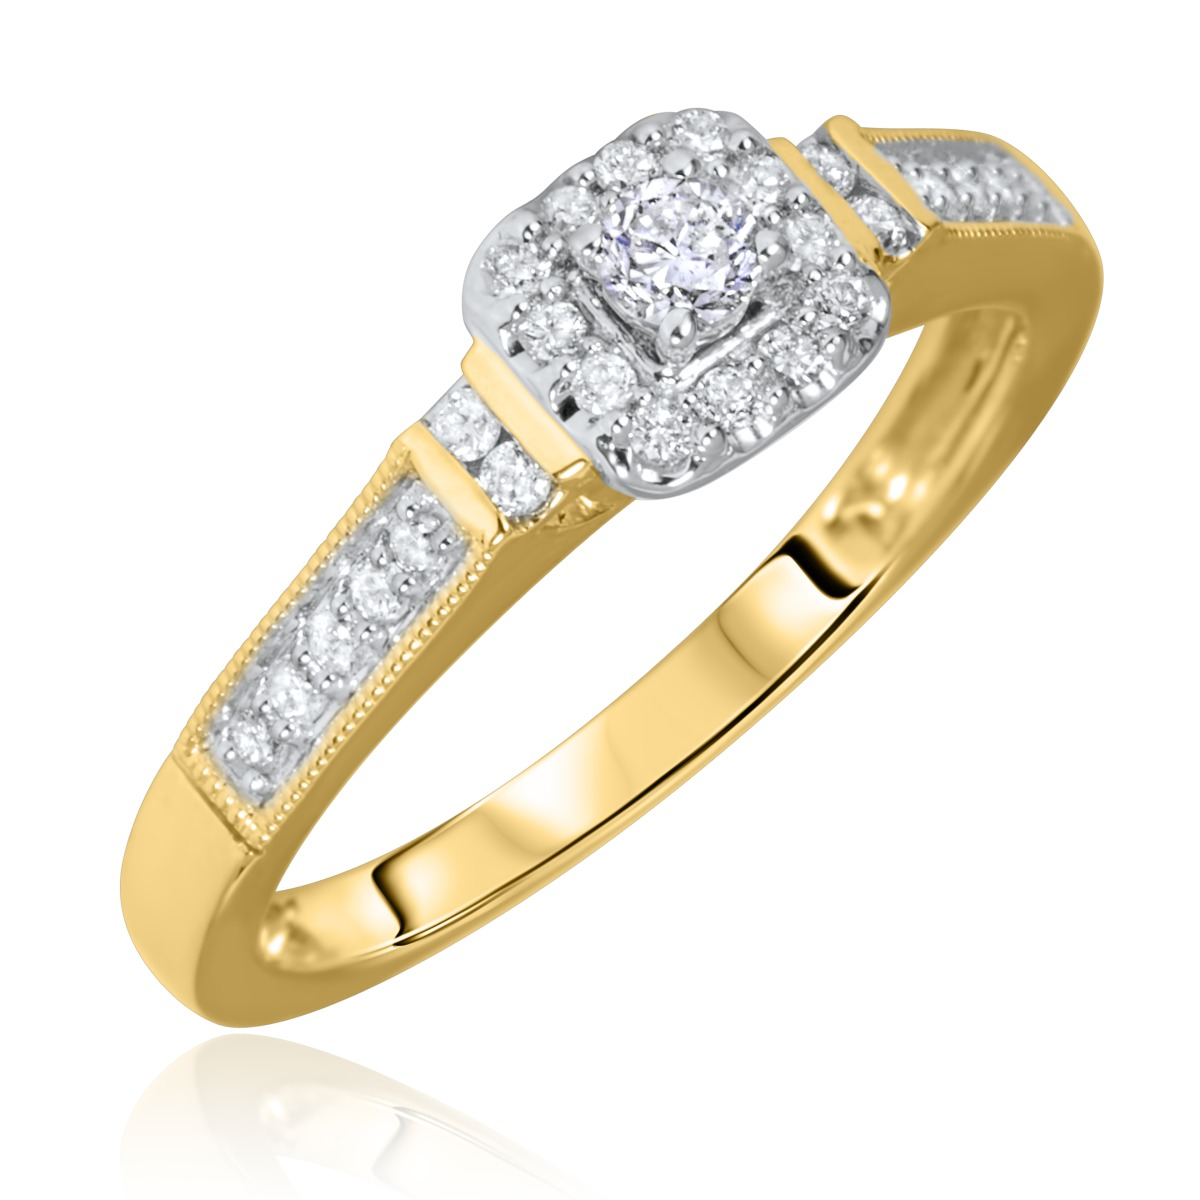 1/5 Carat T.W. Rounds Cut Diamond Ladies Engagement Ring 14K Yellow Gold